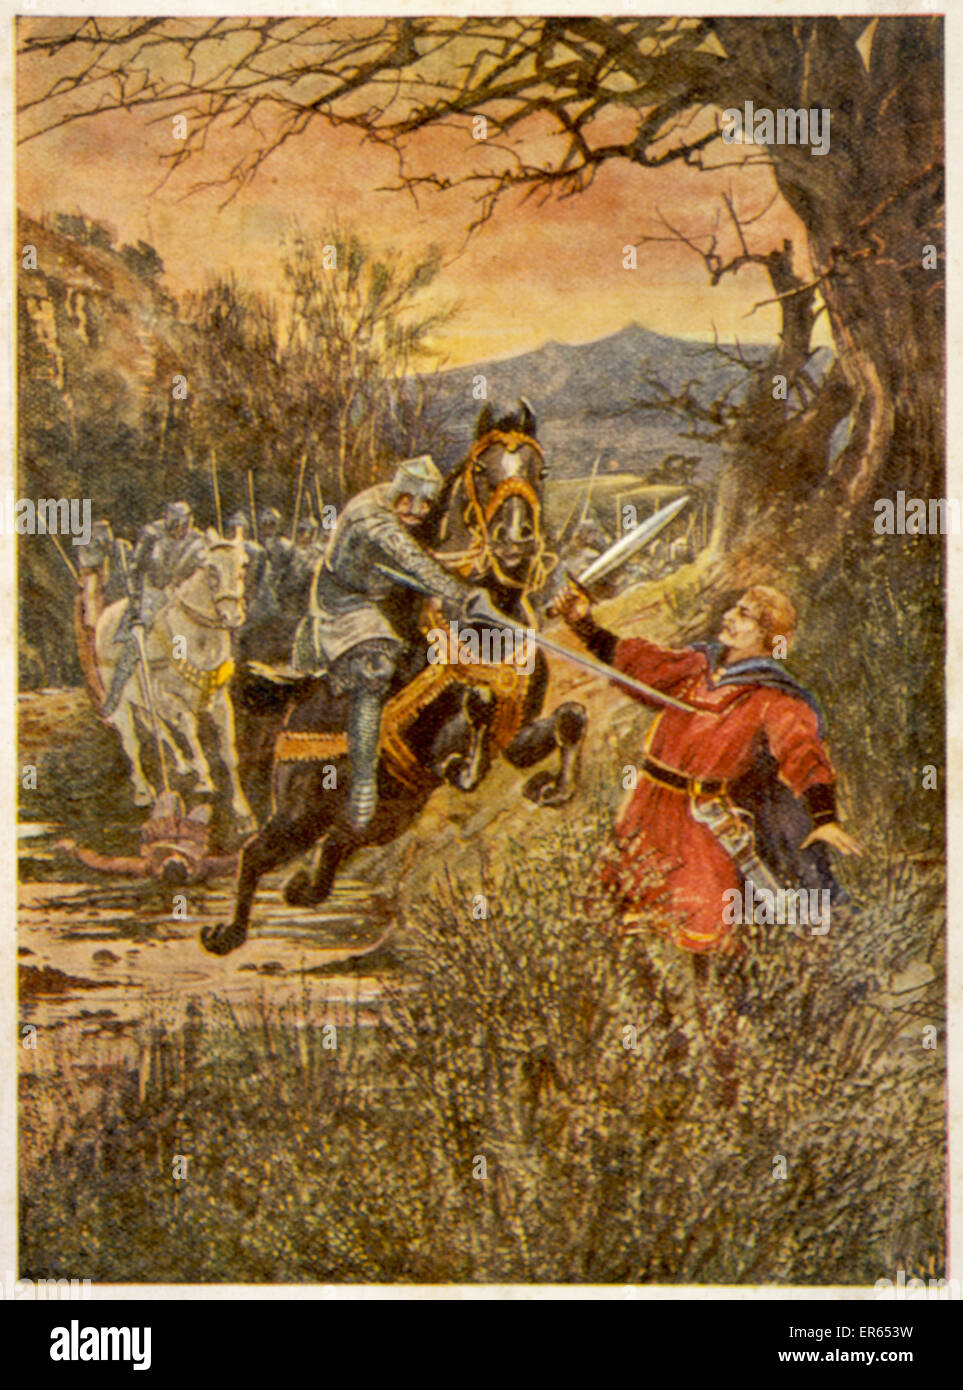 LLYWELYN AP GRUFFUDD The unarmoured Welsh hero is treacherously murdered in a broom thicket by Stephen Frankton. - Stock Image